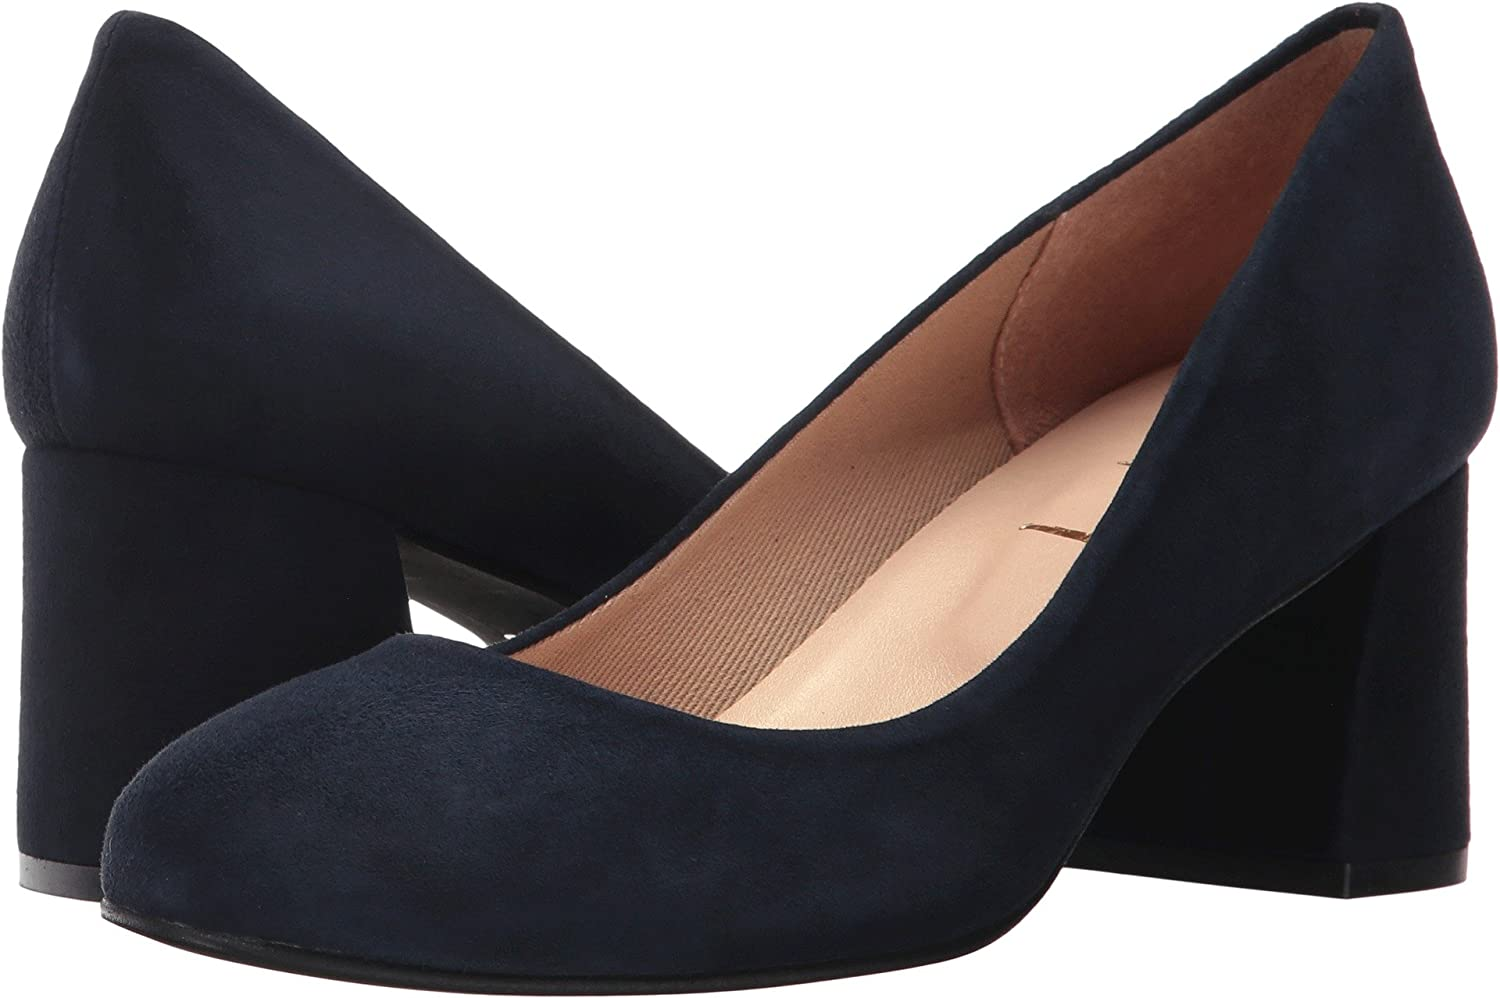 French Sole Womens Trance Suede Round Toe Classic Pumps B06Y22V4FG 11 B(M) US|Navy Suede